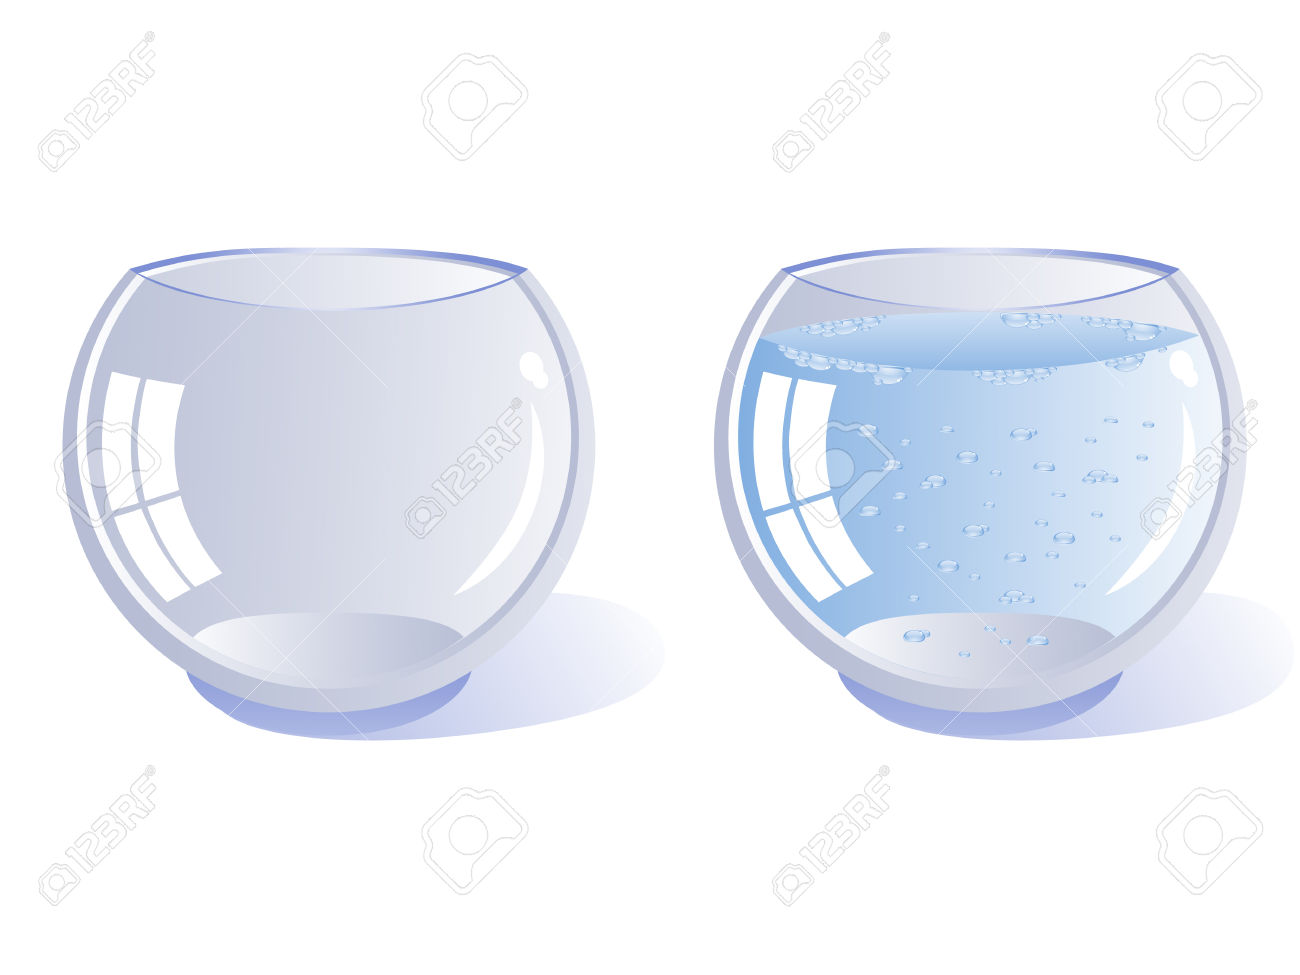 Water filled aquarium clipart graphic black and white download Two Transparent Glass Vessel Rounded. One Empty And One Filled ... graphic black and white download